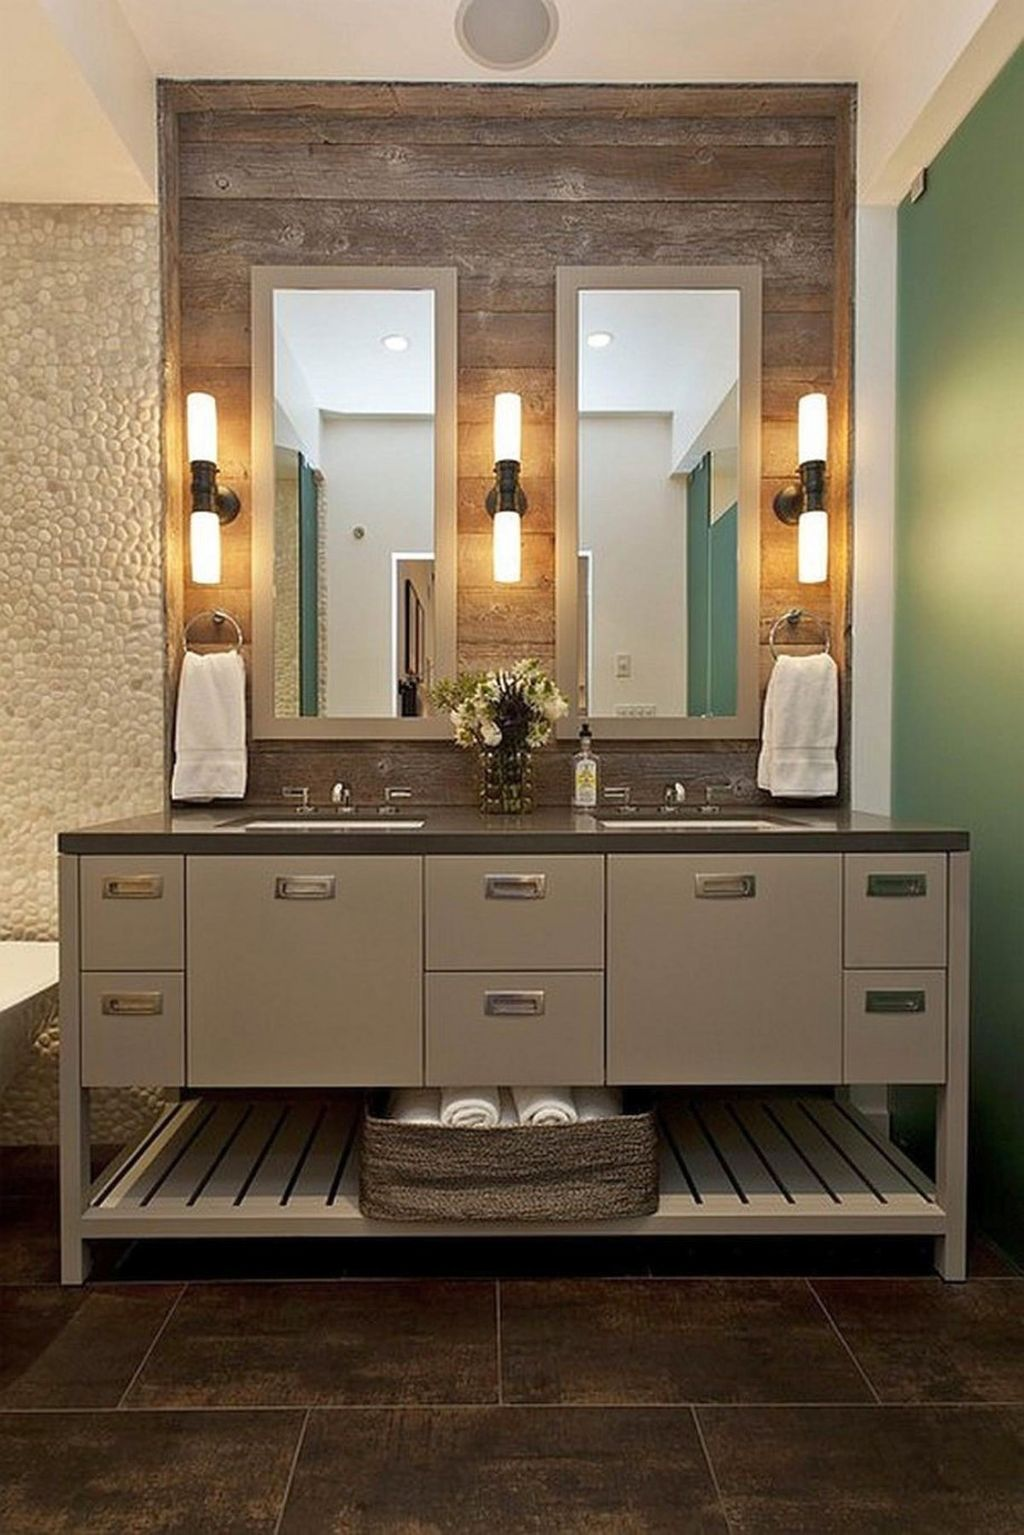 Double framed mirrors with linear lighting 18 stunning master double framed mirrors with linear lighting 18 stunning master bathroom lighting ideas aloadofball Image collections